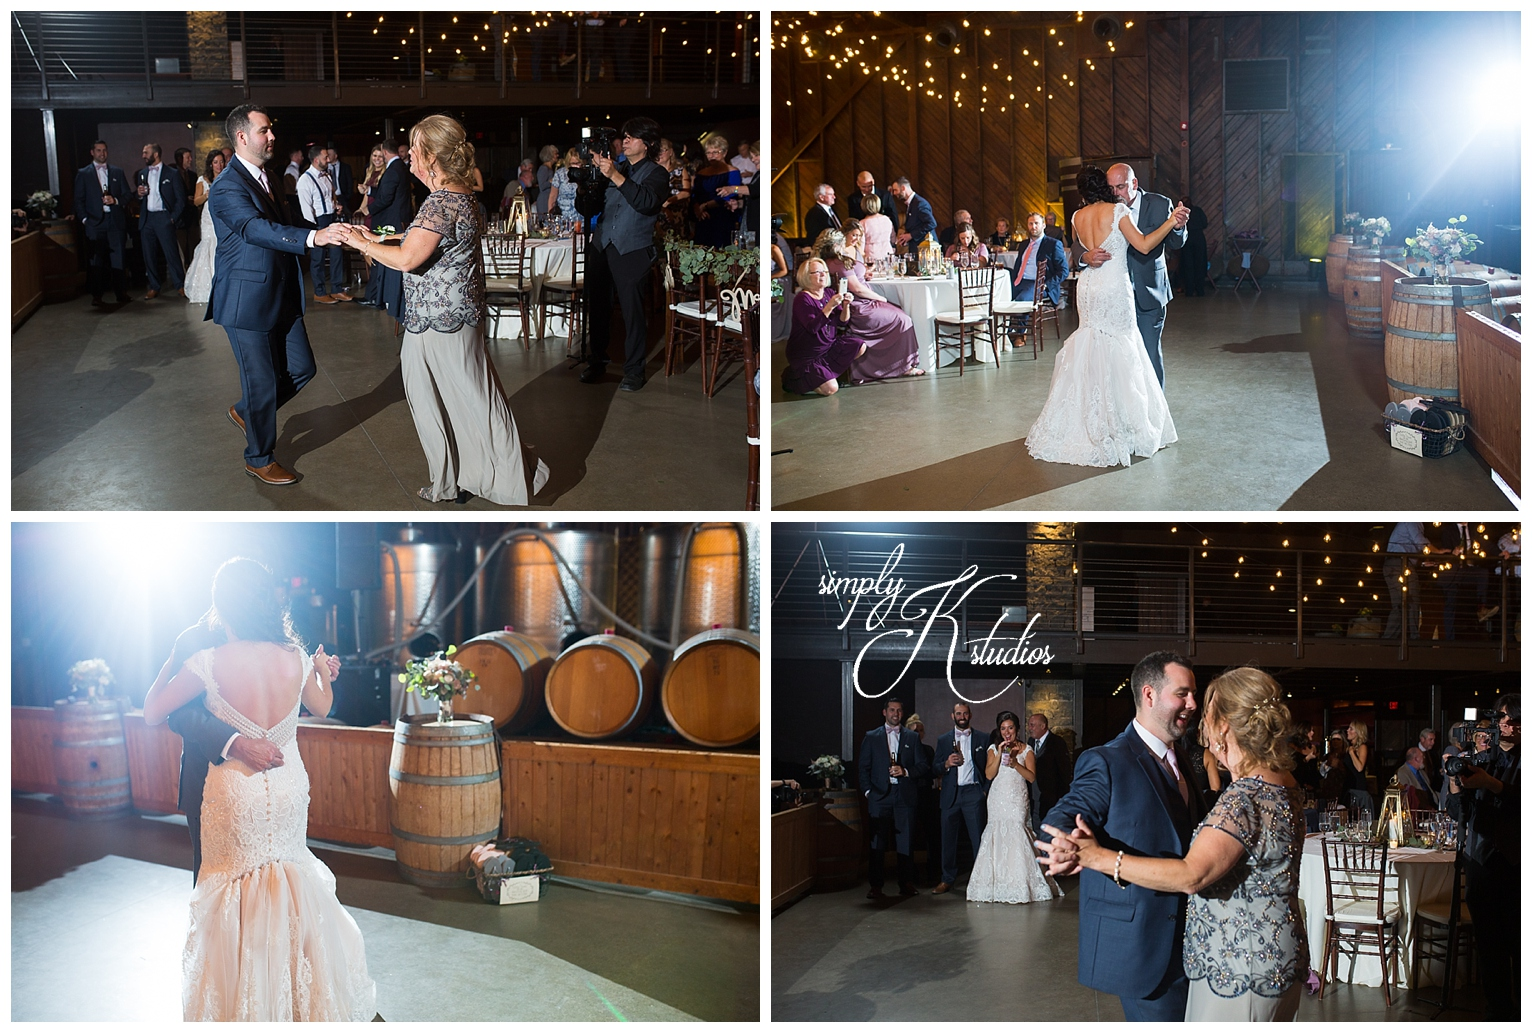 104 Wedding Reception at a vineyard.jpg